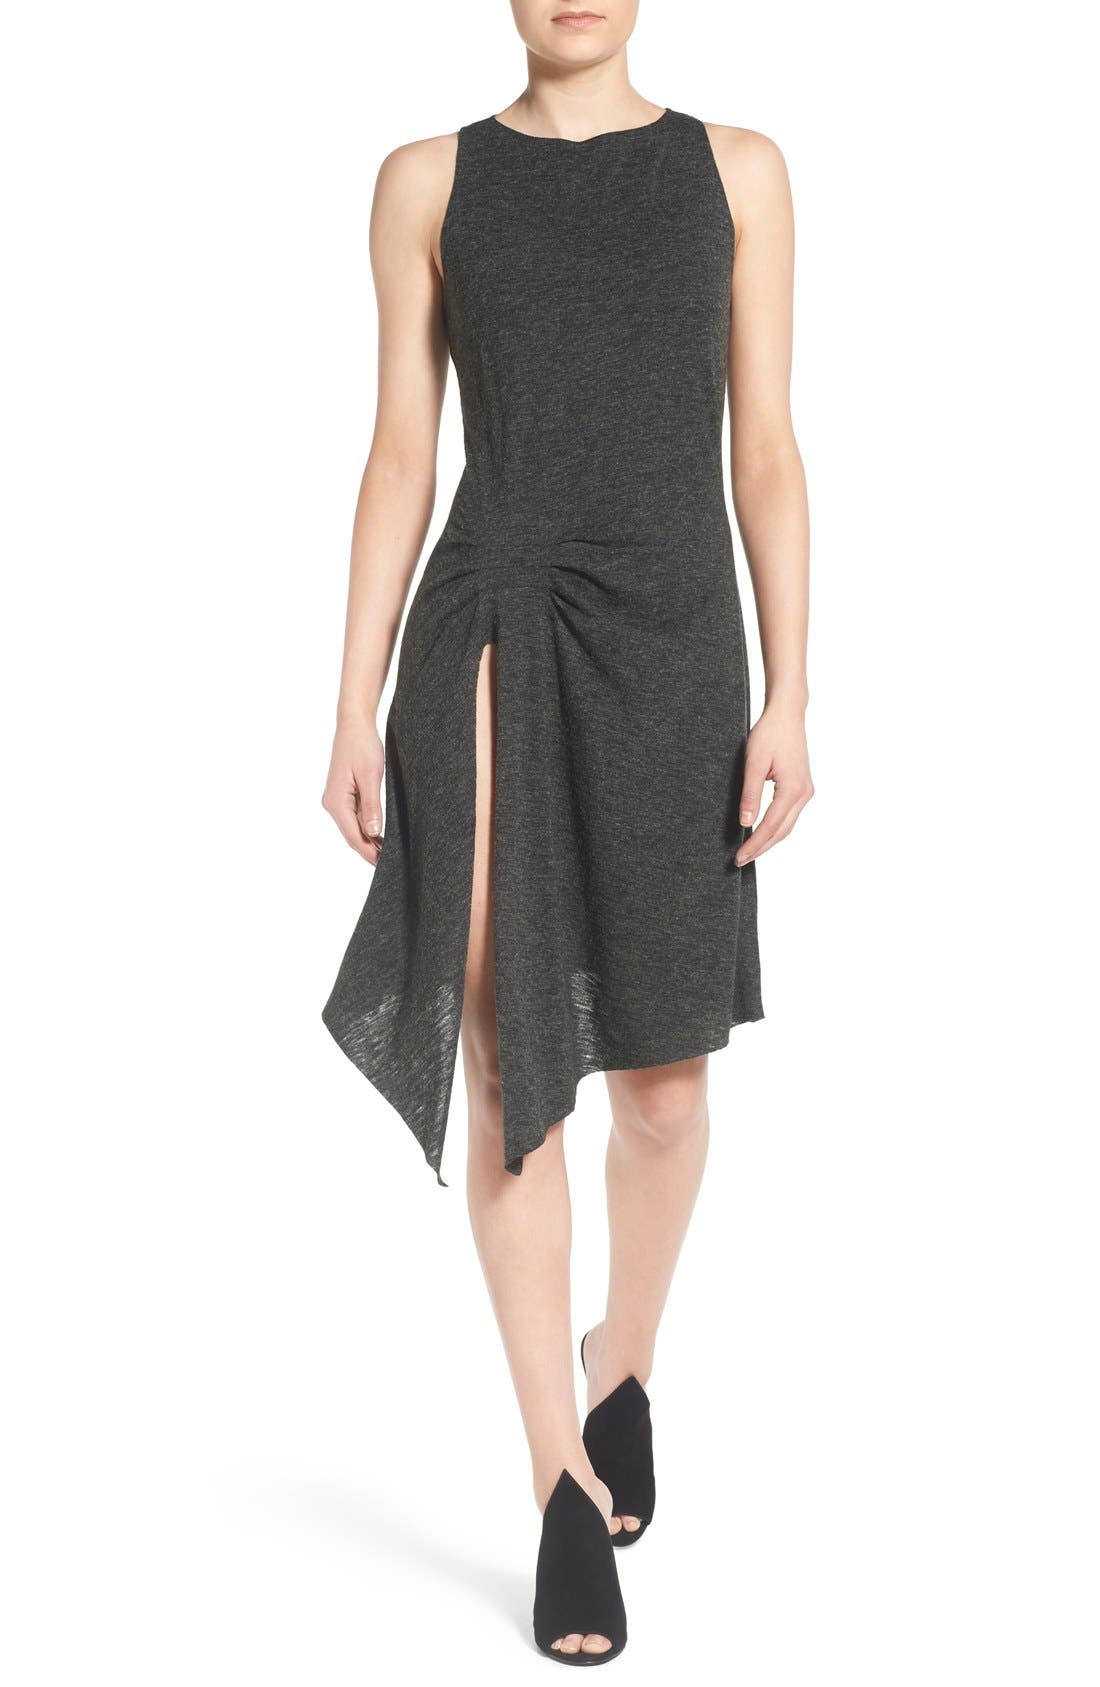 Alternate Image 1 Selected - KENDALL + KYLIE Raw Edge Jersey Racerback Dress